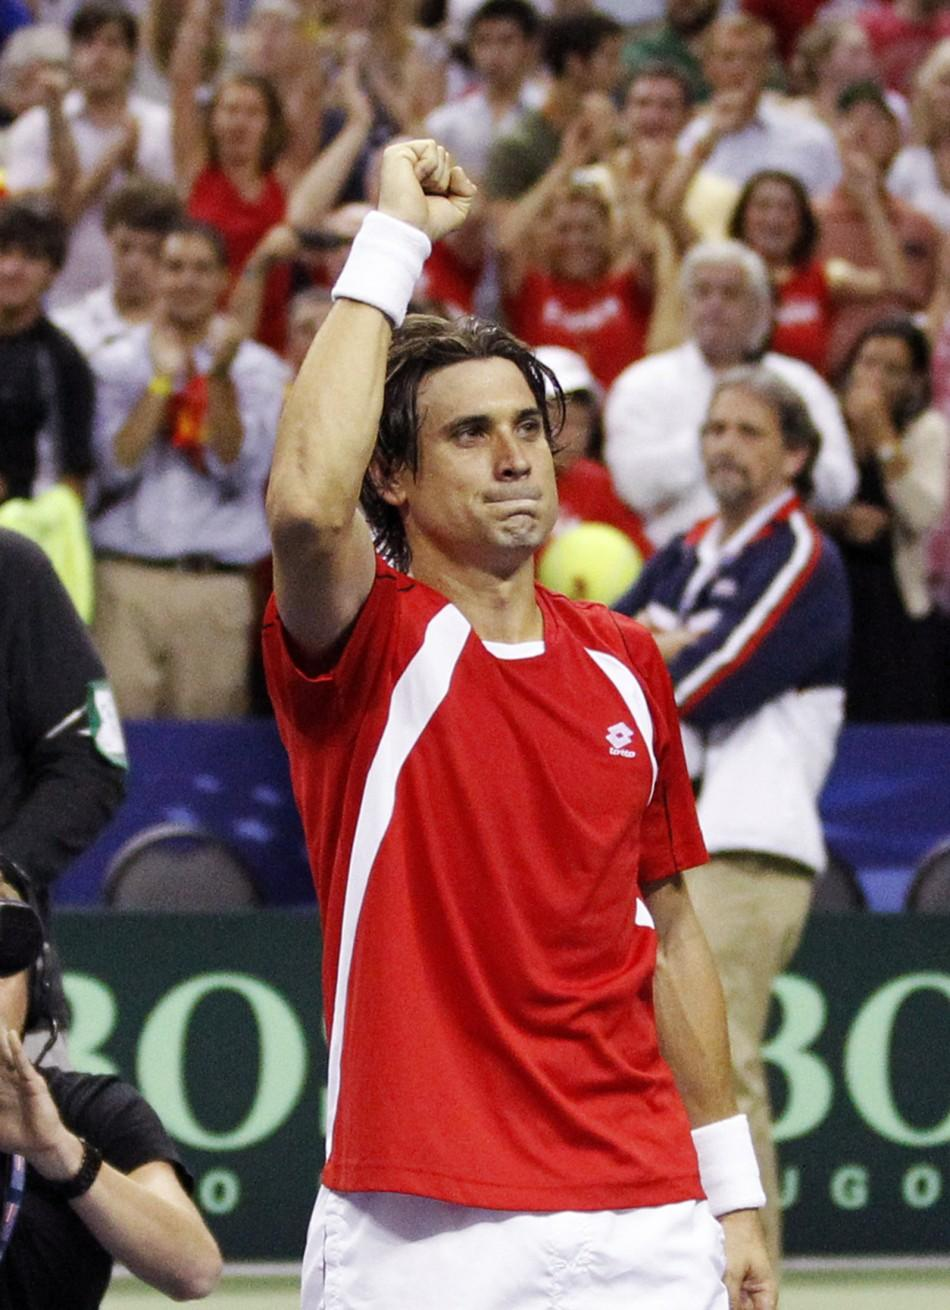 David Ferrrer defeating Mandy Fish booked Spain in semi-finals of Davis Cup